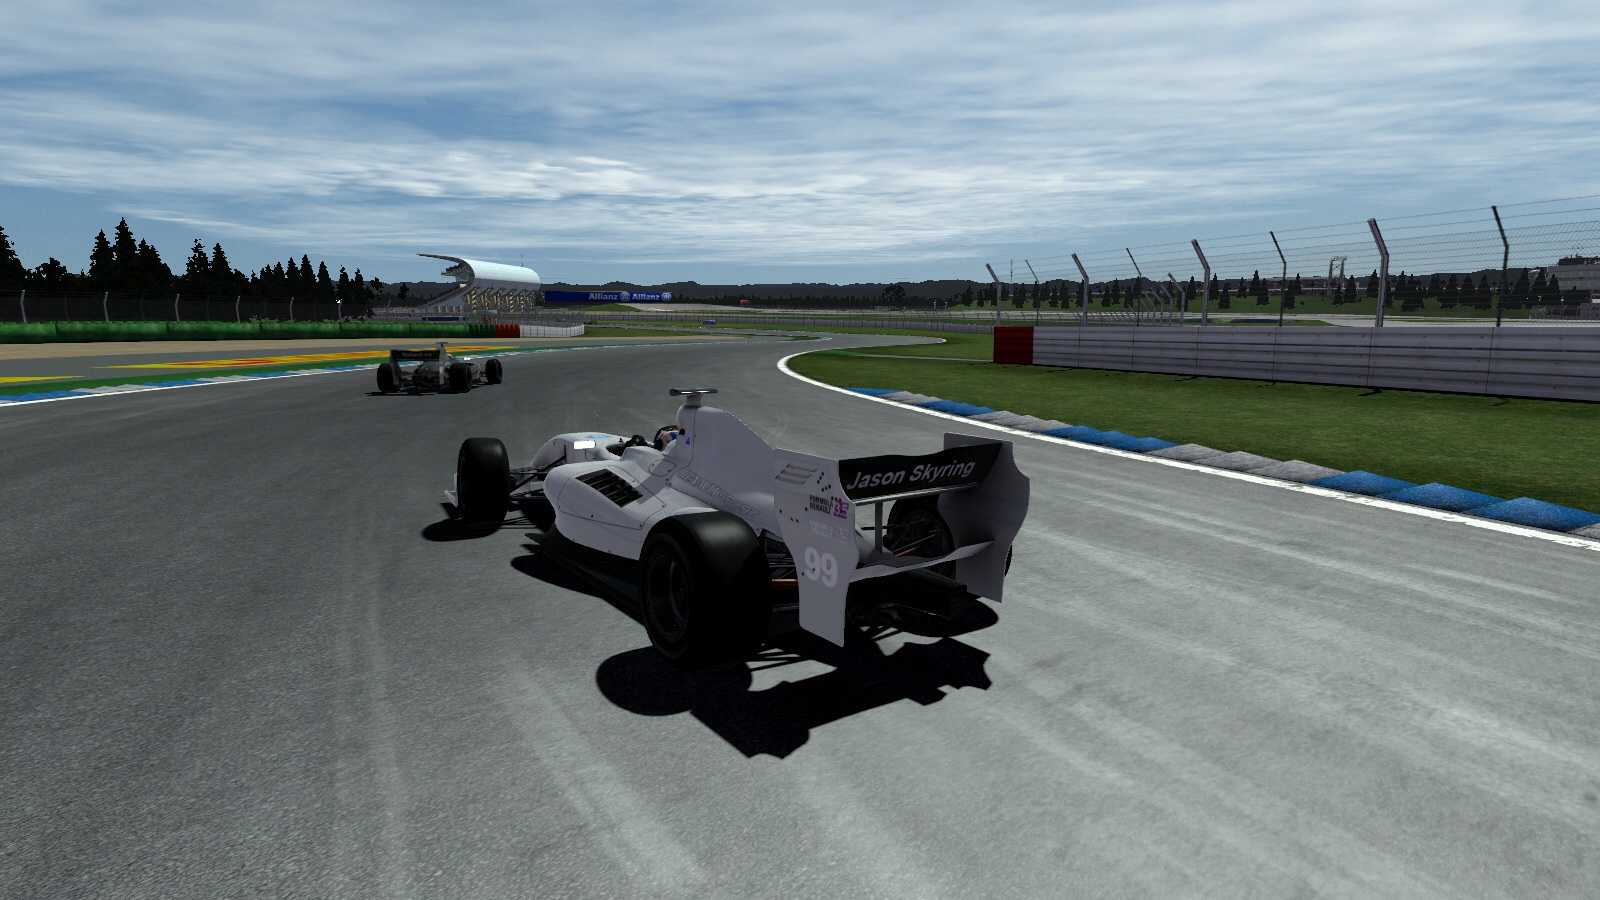 VWSR S4: Team Formation Race 2 - Sun 28th Sept 2014